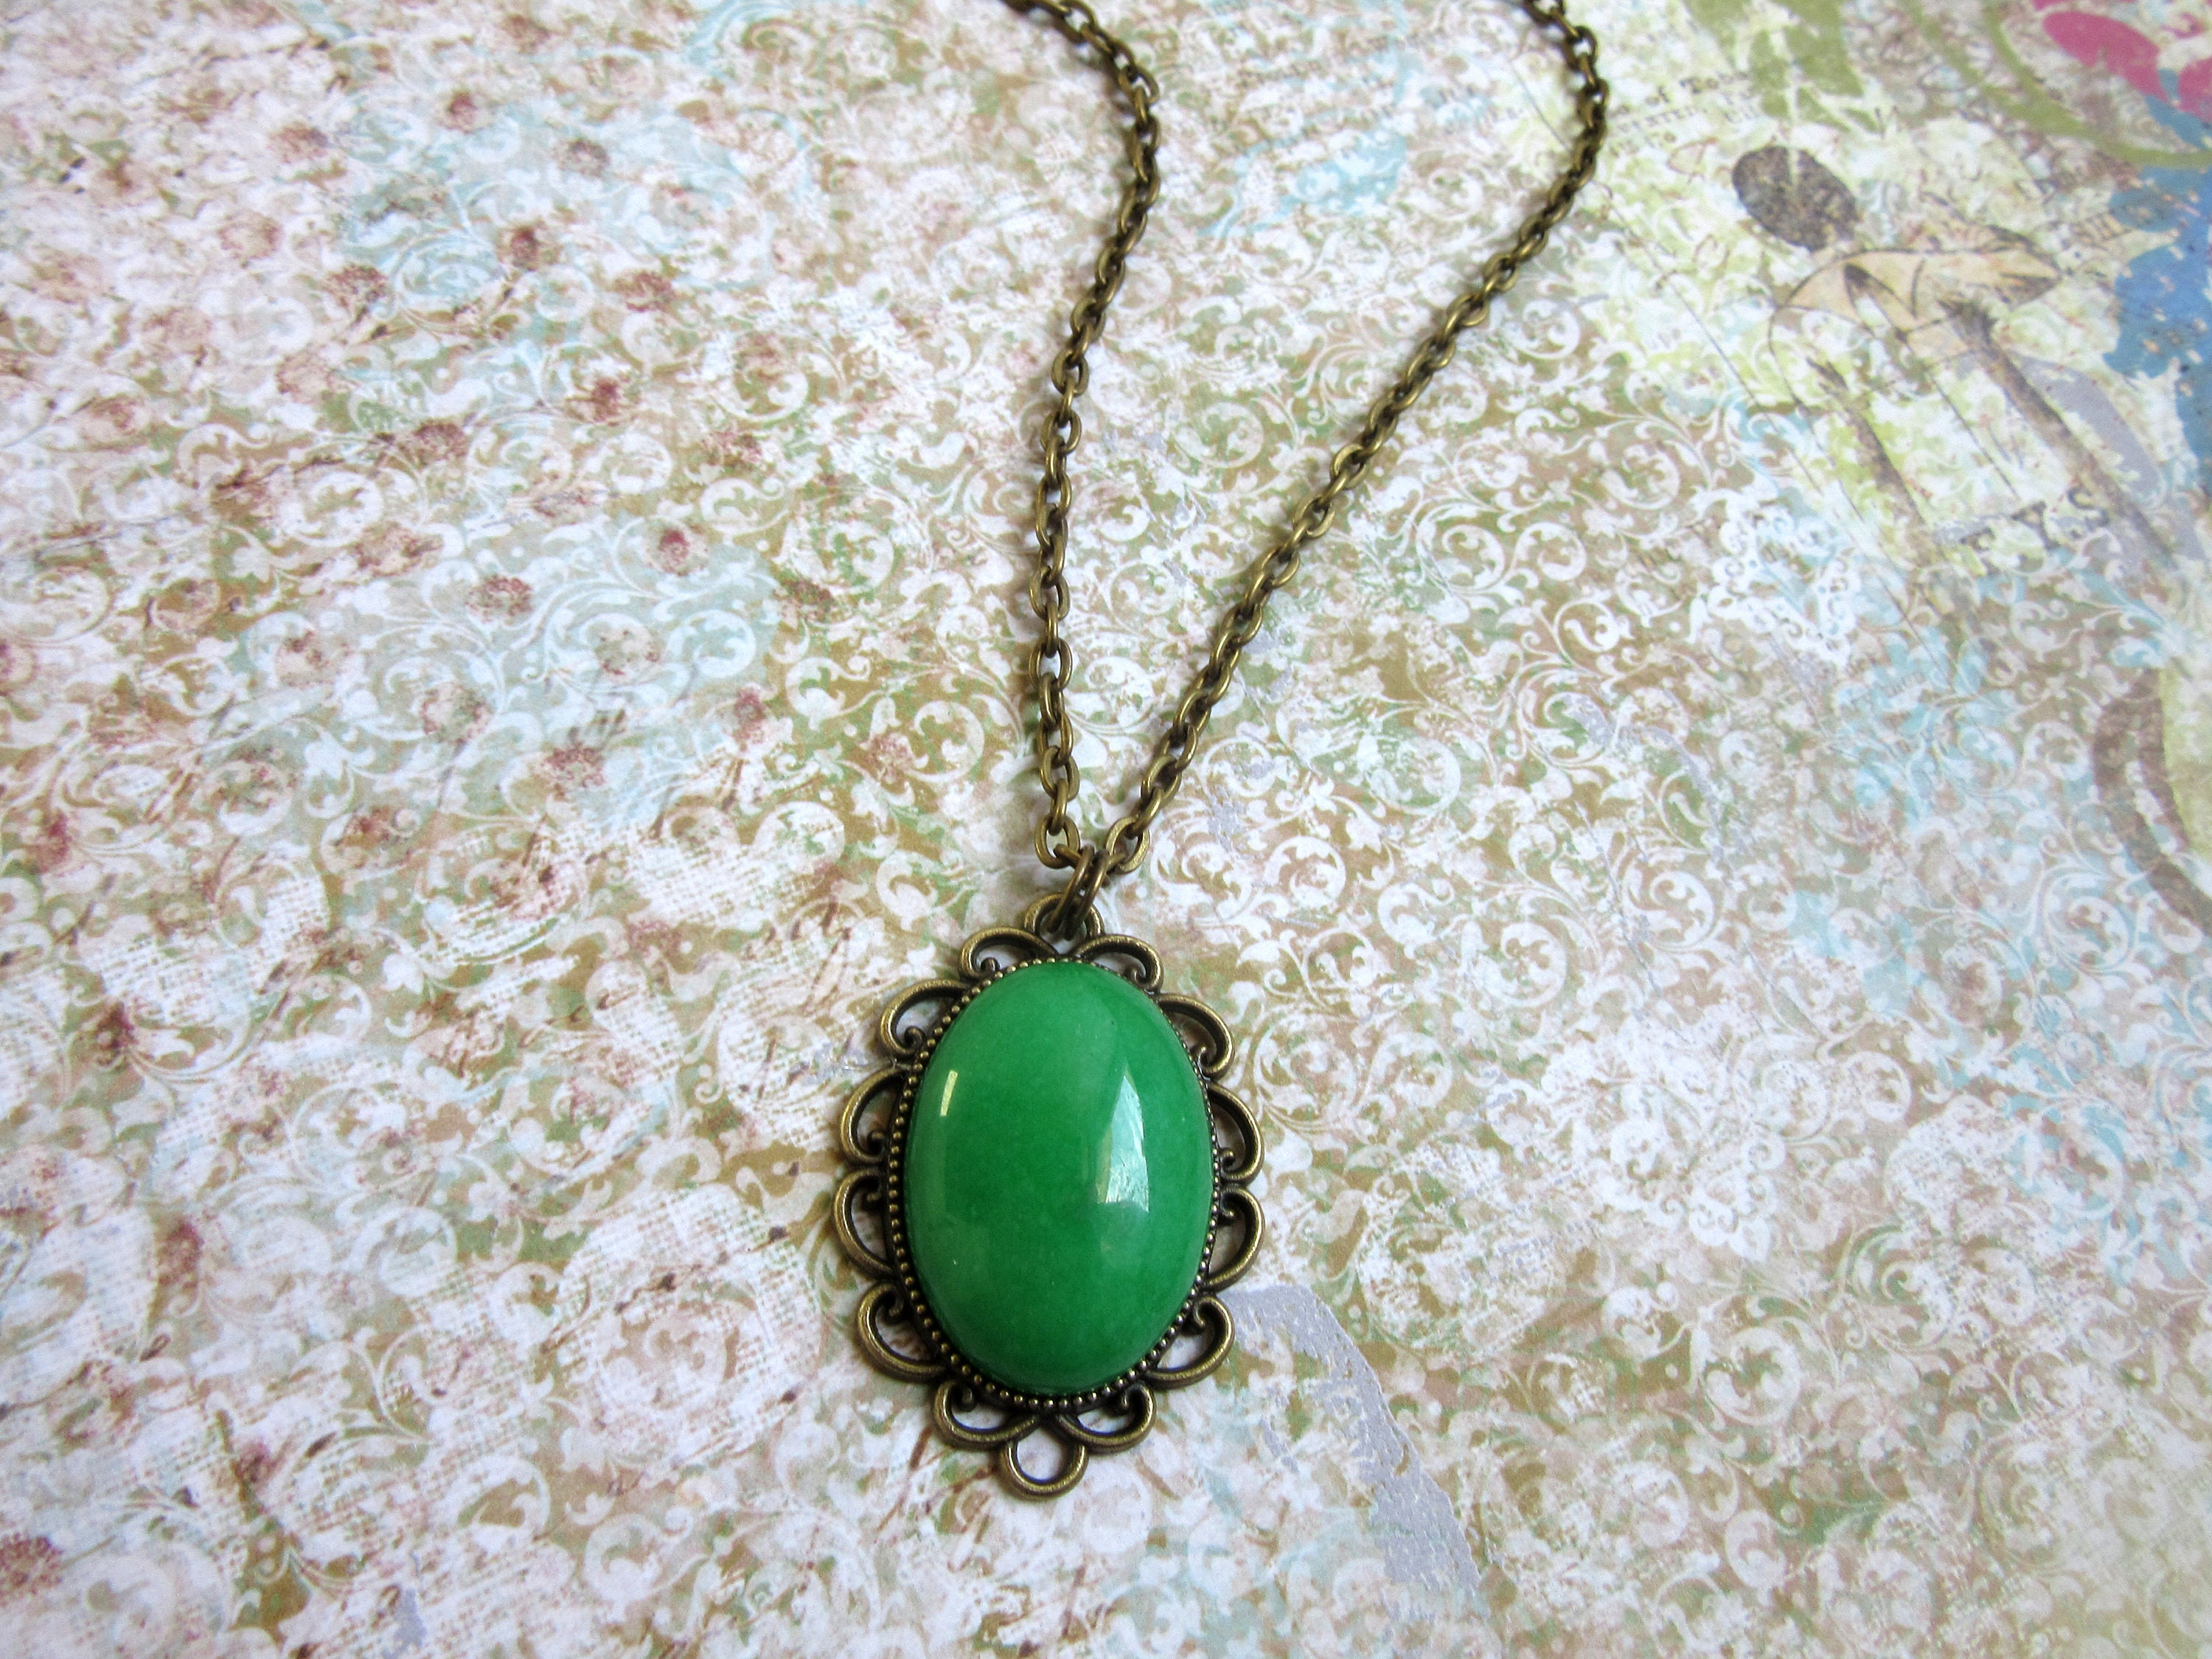 icy jade green jewelry img royal designer set elegant jadeite egg inquiry tag necklace